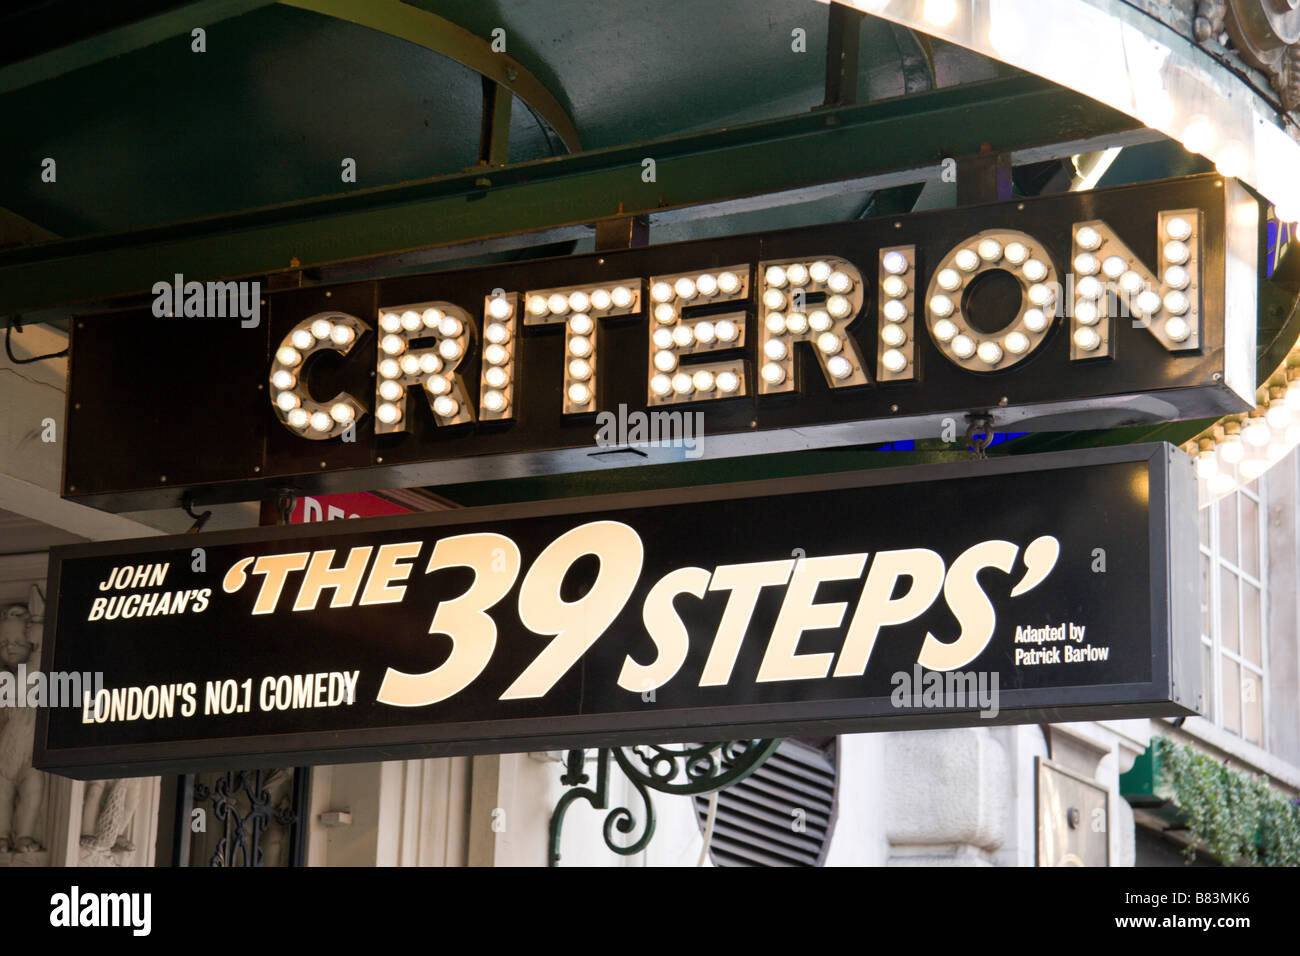 Advertising sign for 'The 39 Steps' above the entrance to the Criterion Theatre London.  Jan 2009 - Stock Image